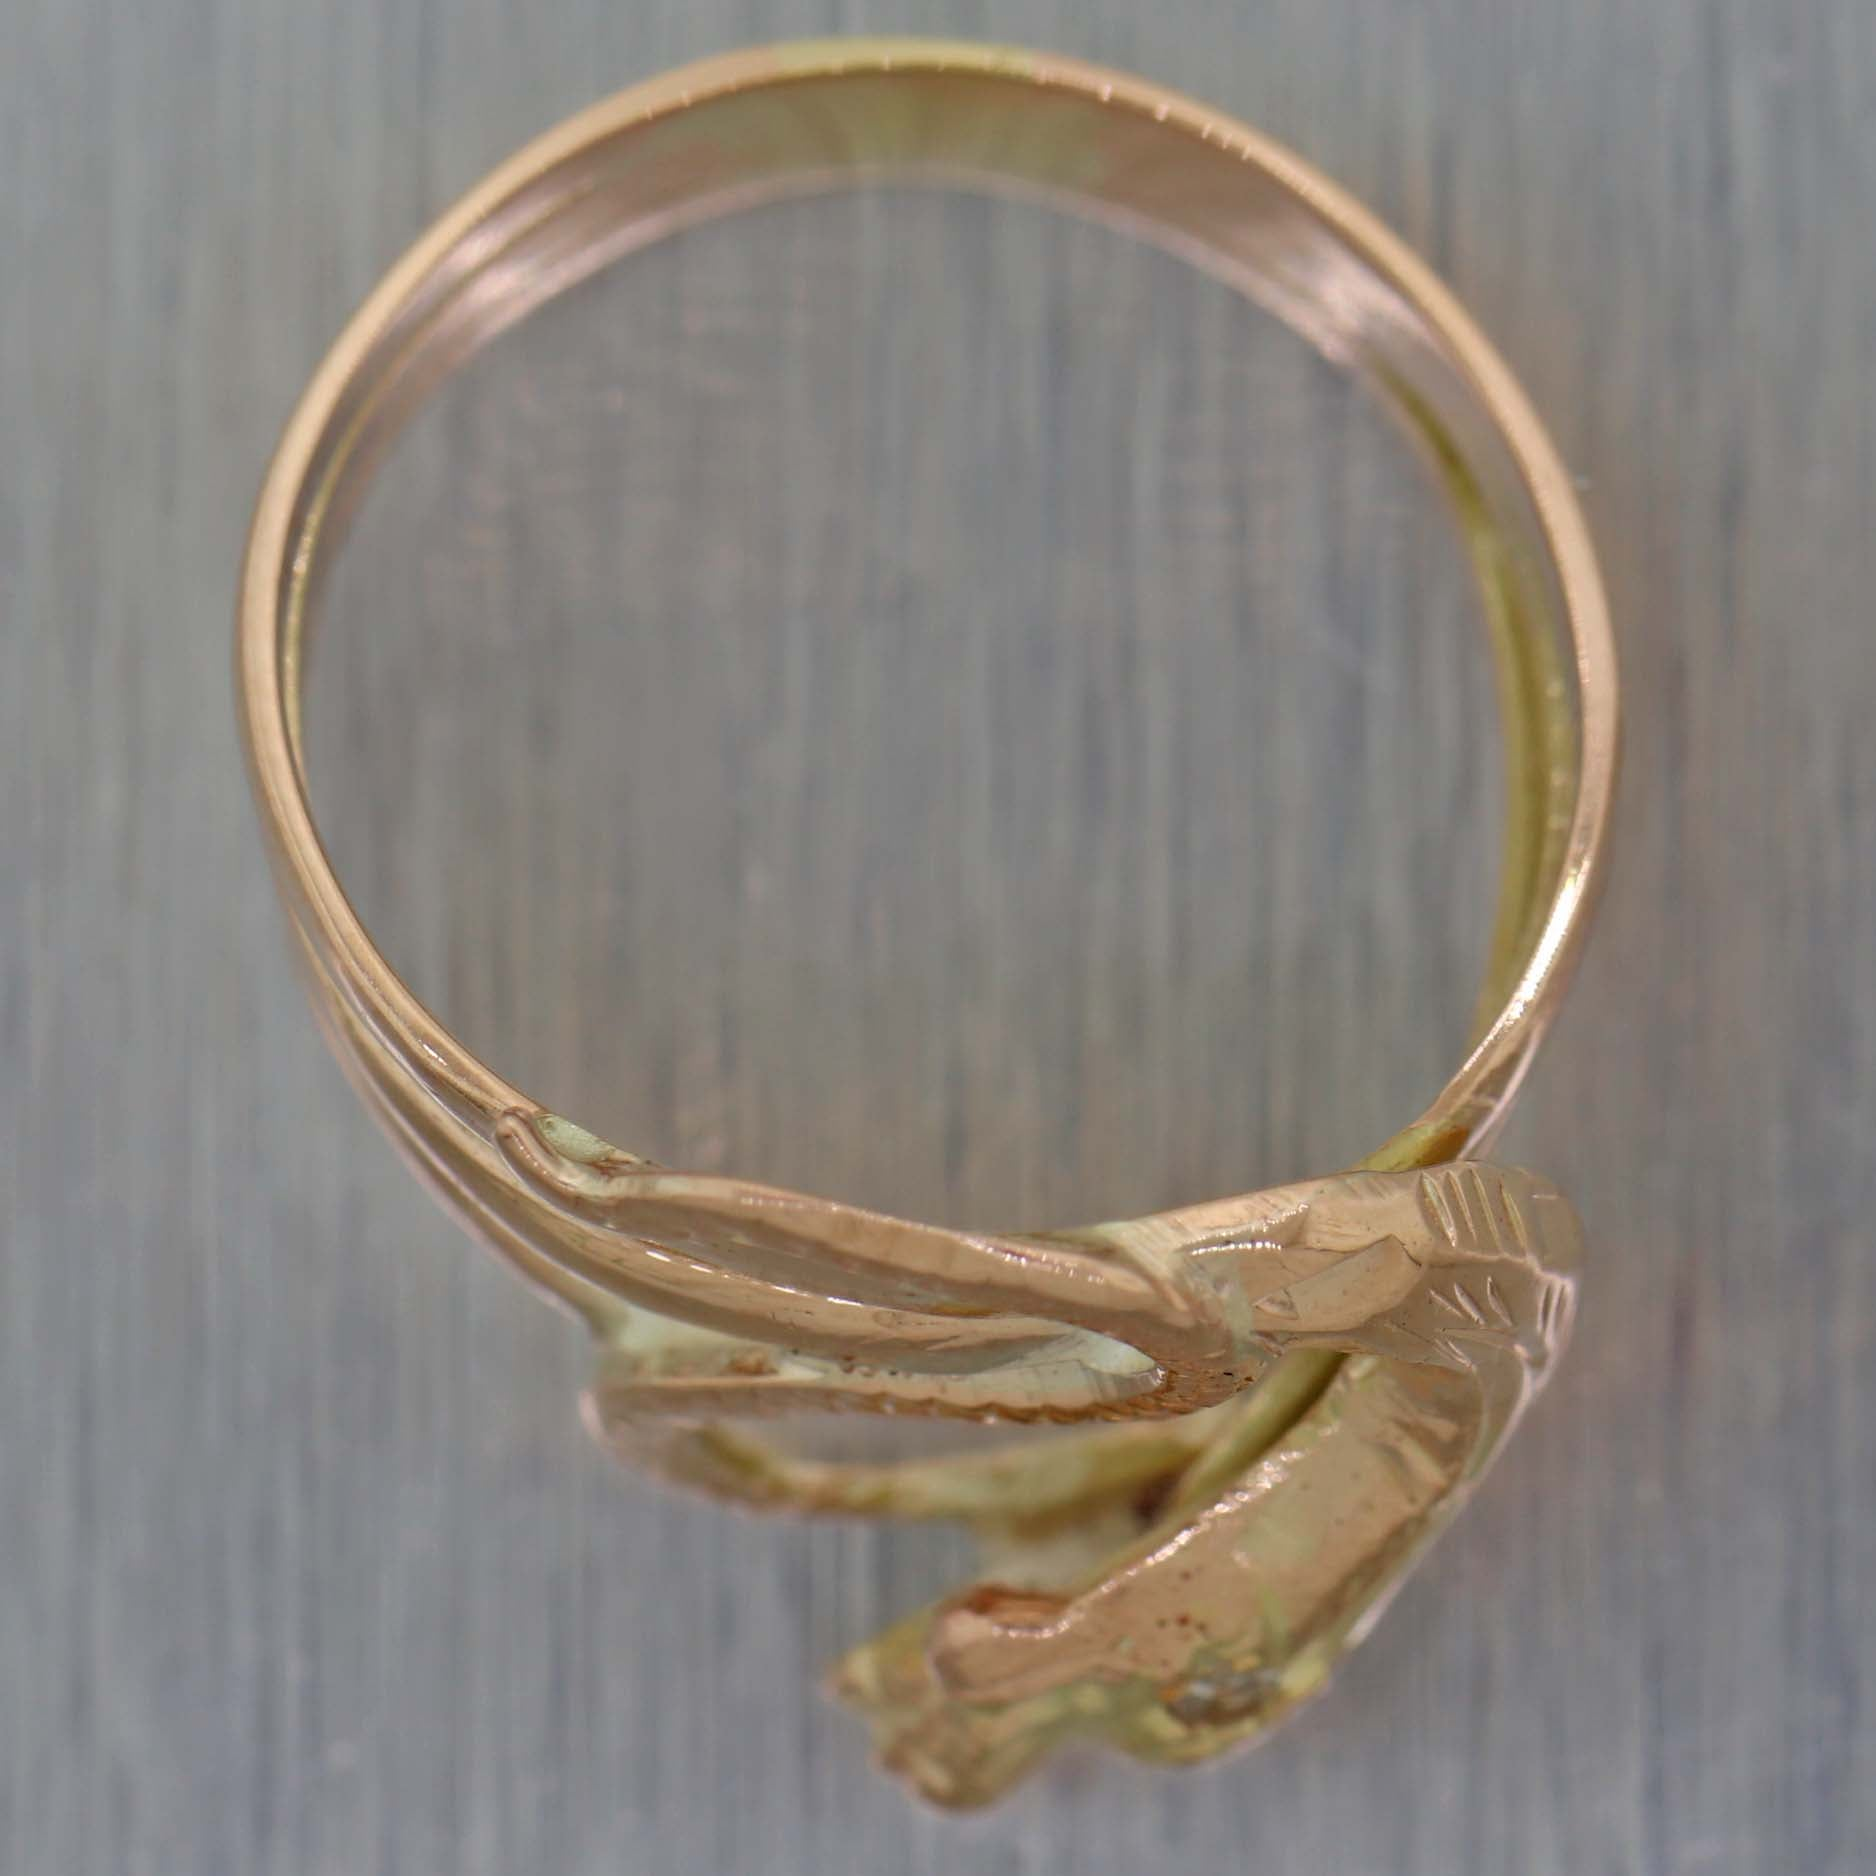 1890's Antique Victorian 14K Rose Gold Snake Ring